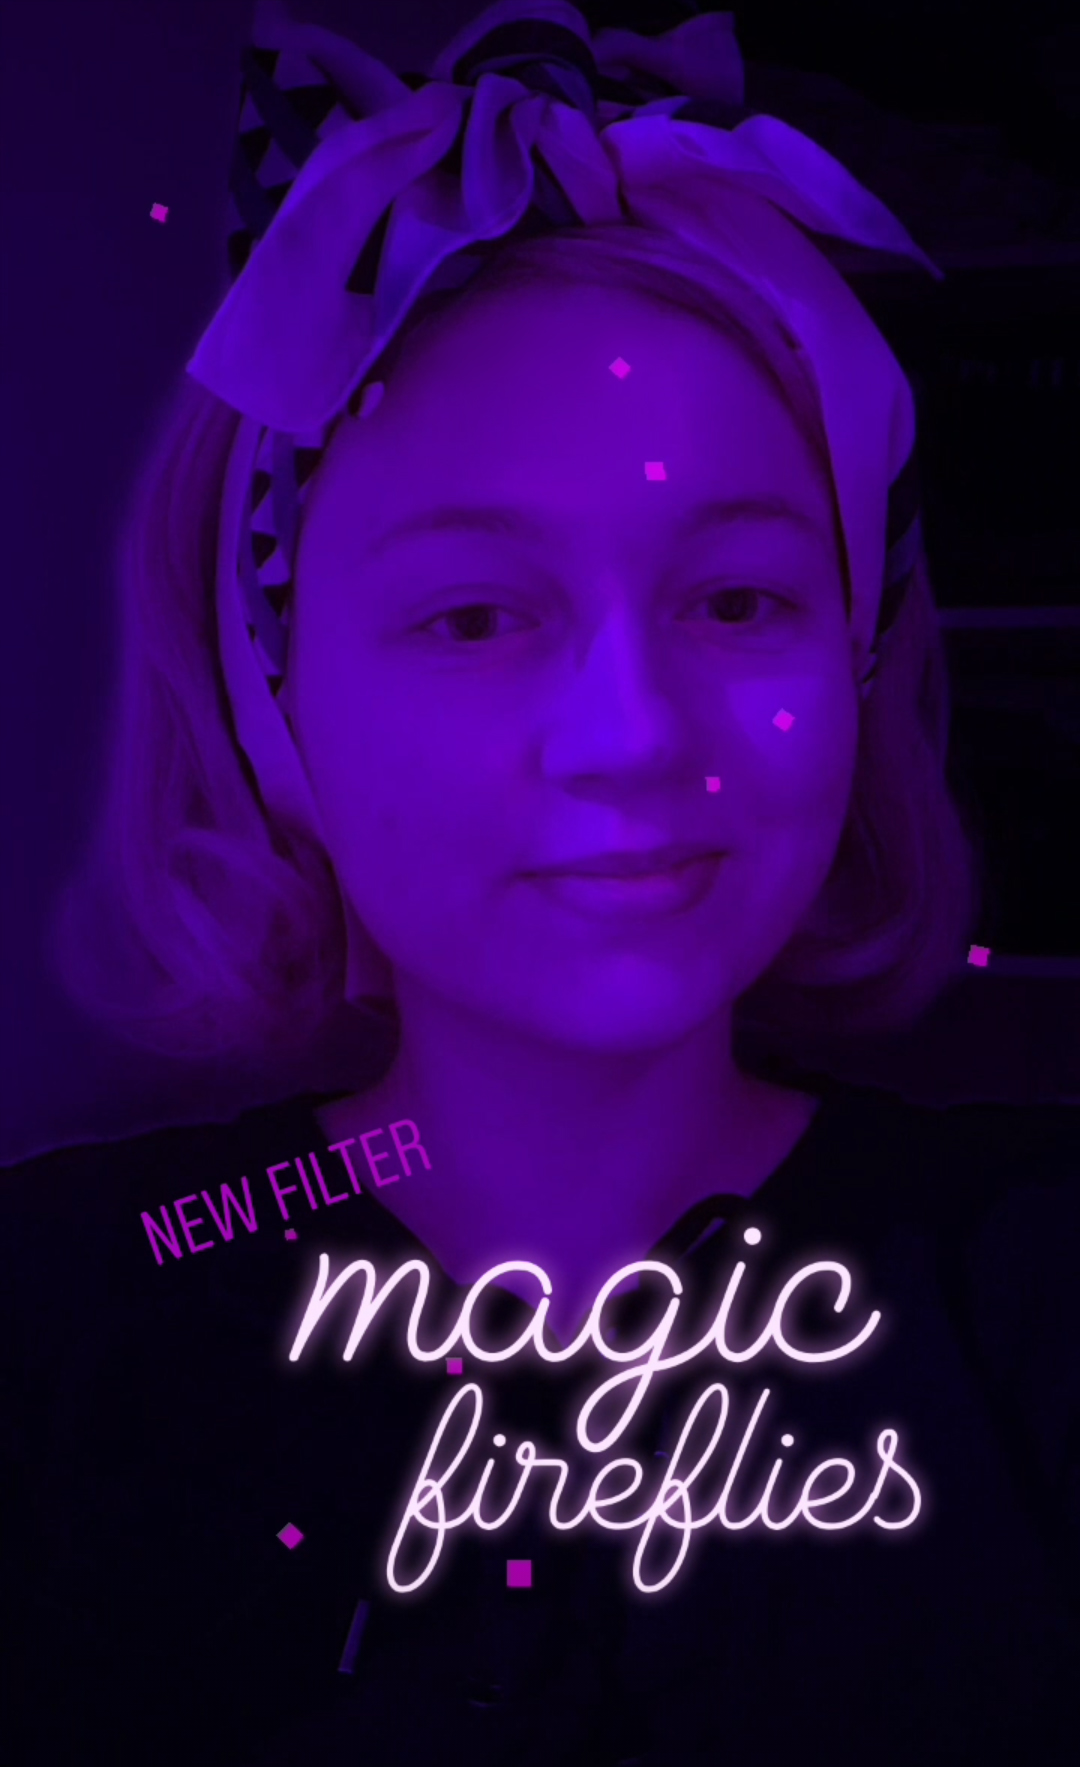 Bekanntmachung_IG_magic_fireflies